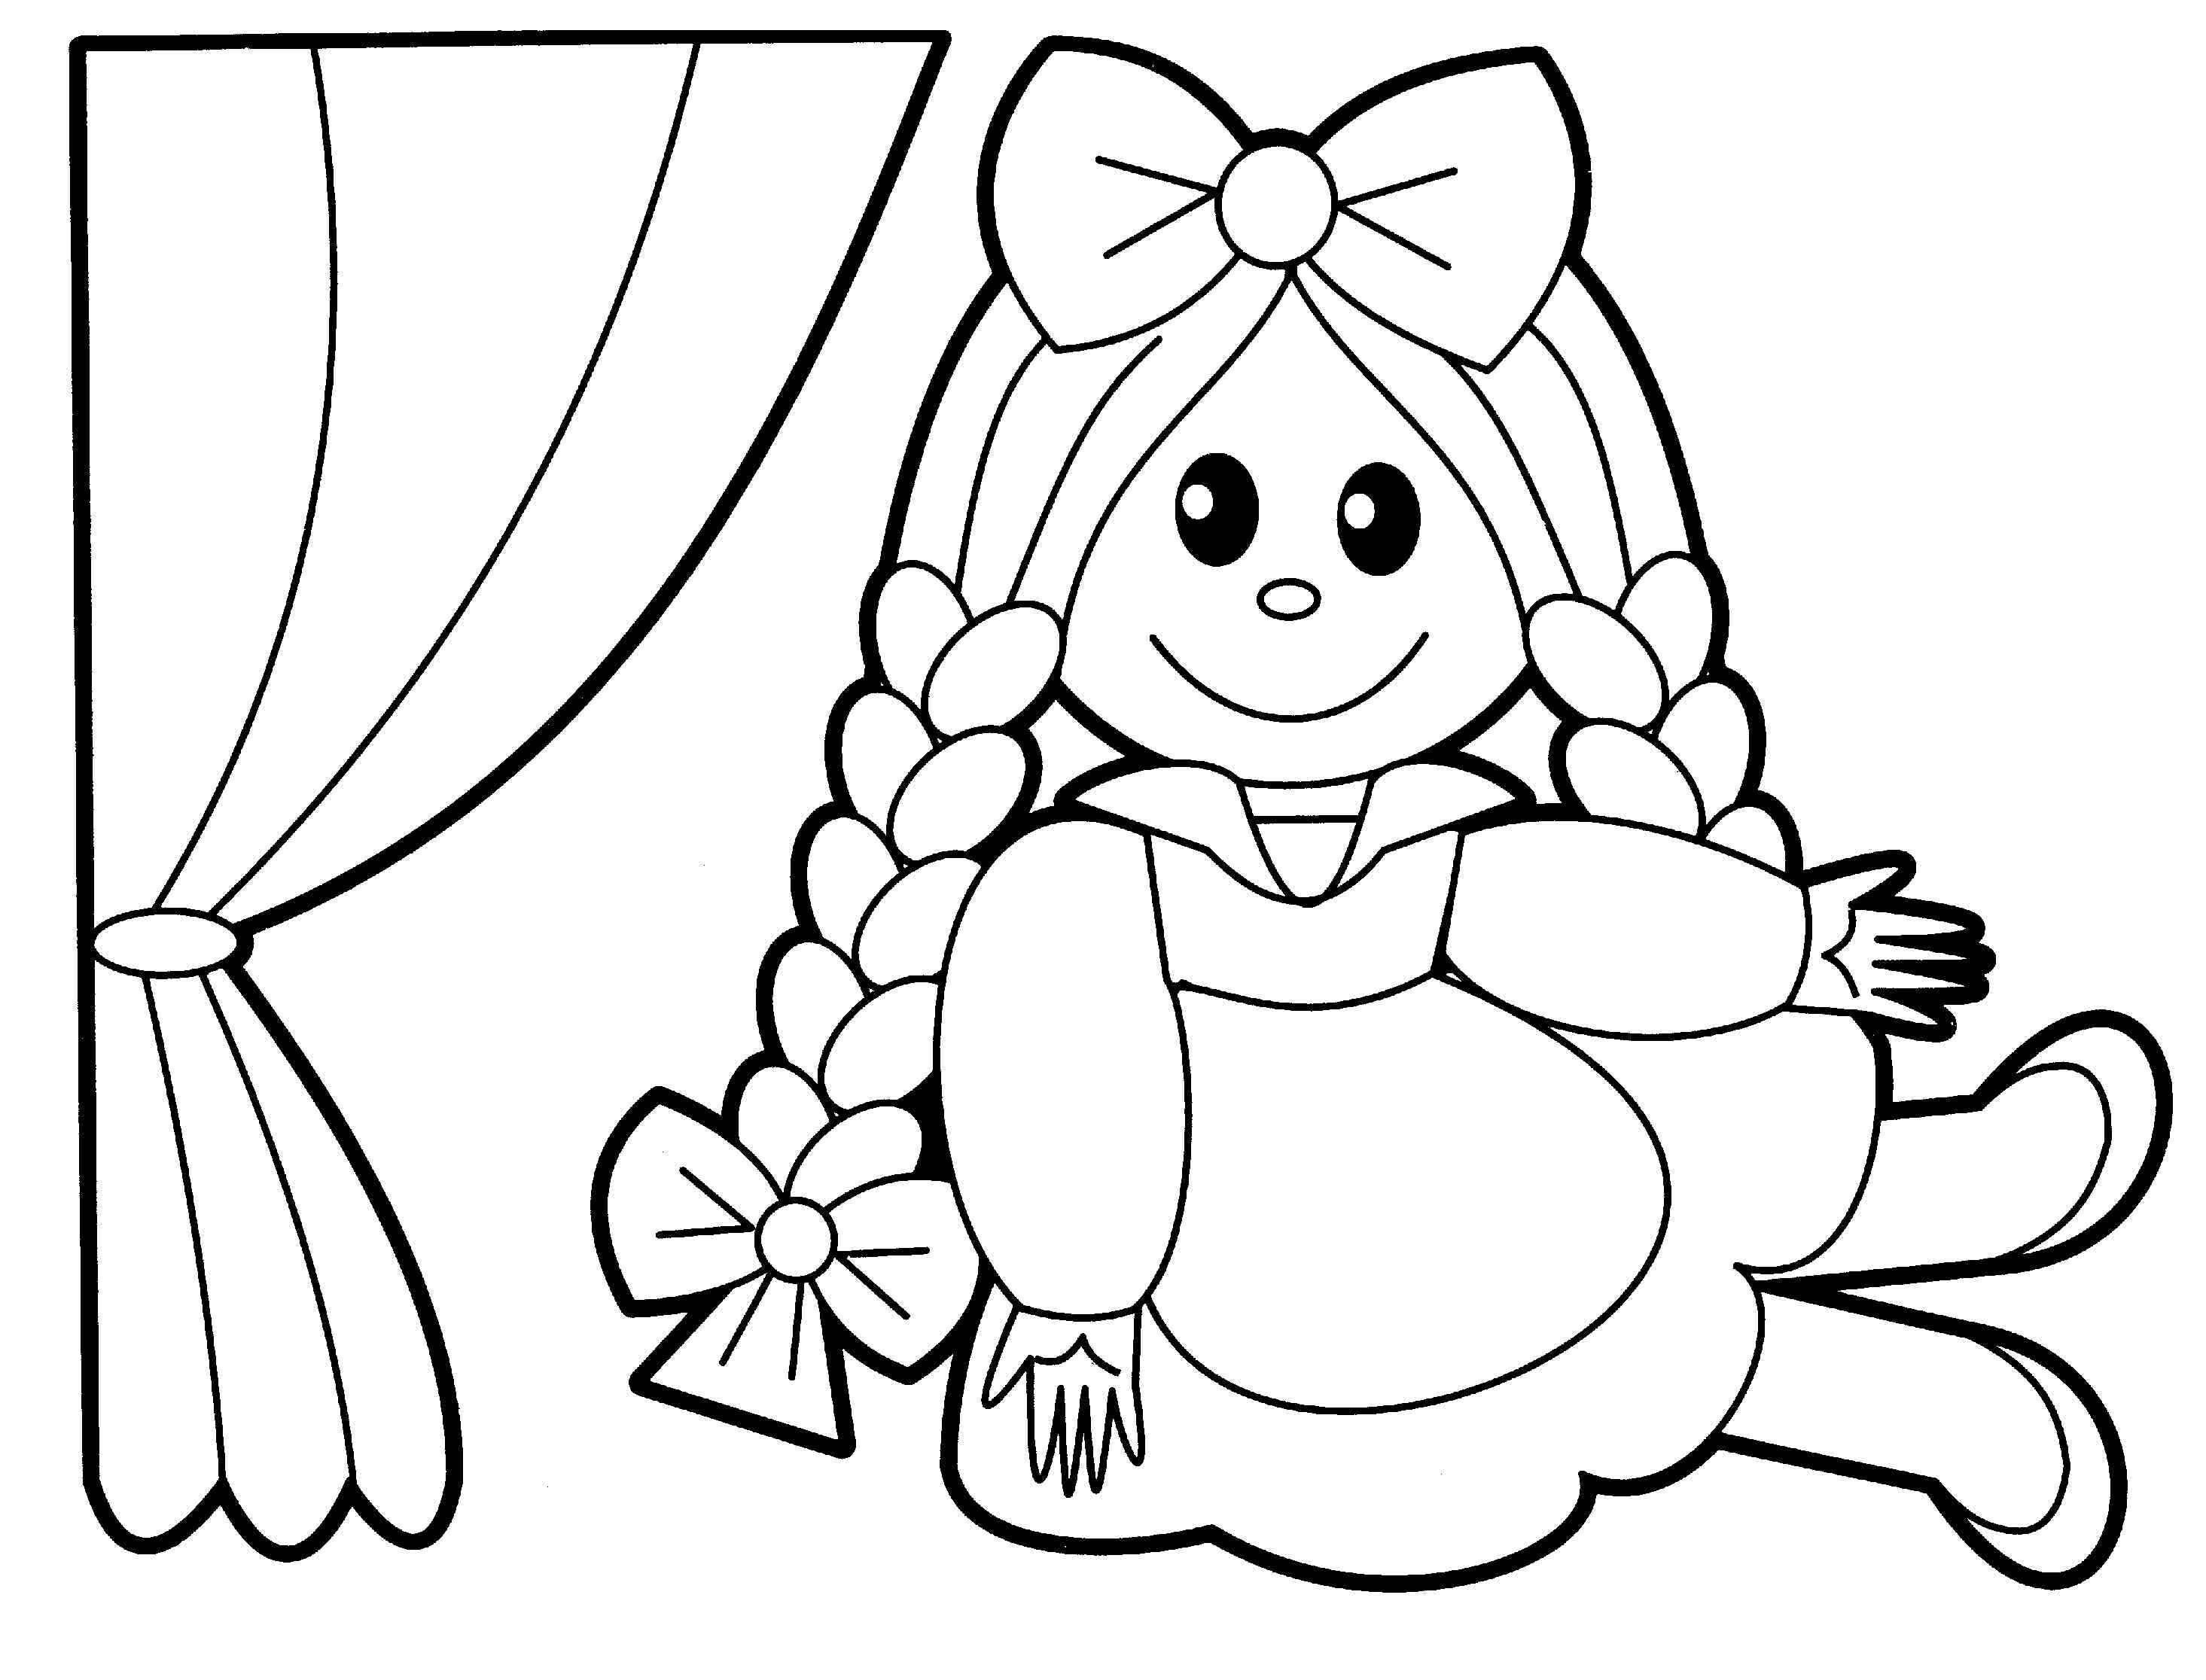 coloring worksheets toys coloring pages best coloring pages for kids worksheets coloring